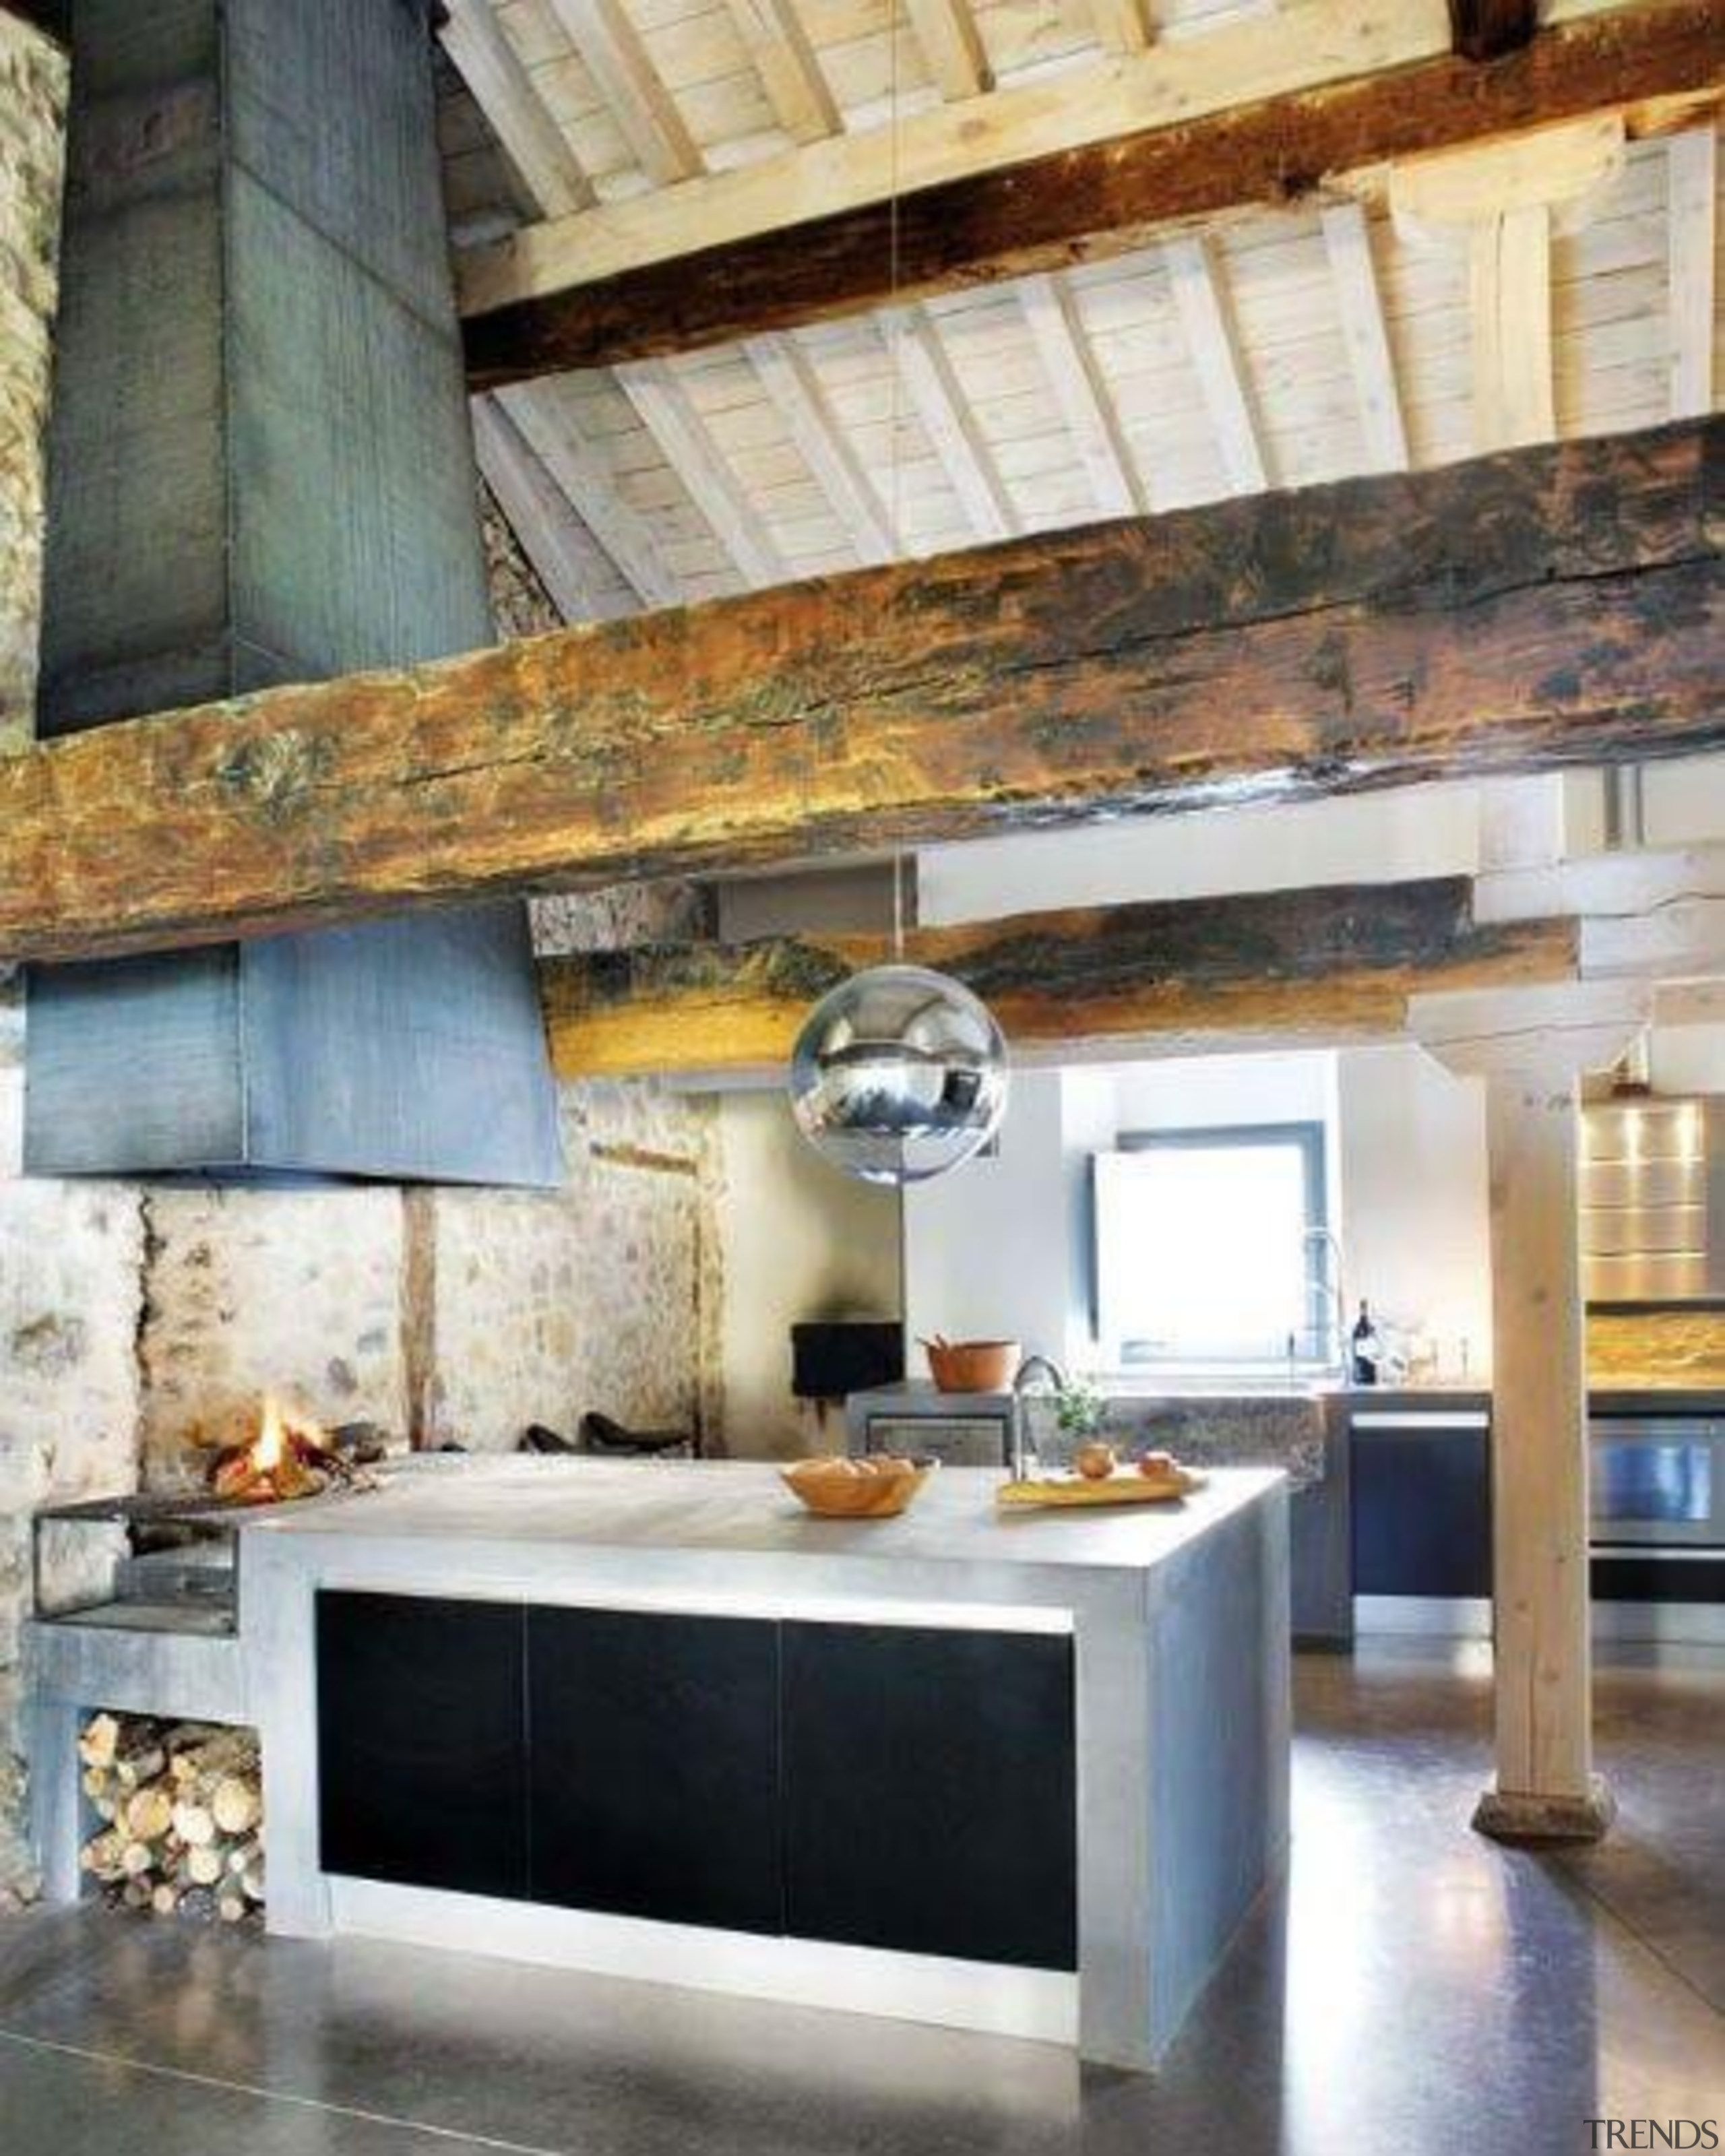 Start a myTrends ProjectCreate an ideas hub for beam, ceiling, countertop, hearth, interior design, kitchen, living room, white